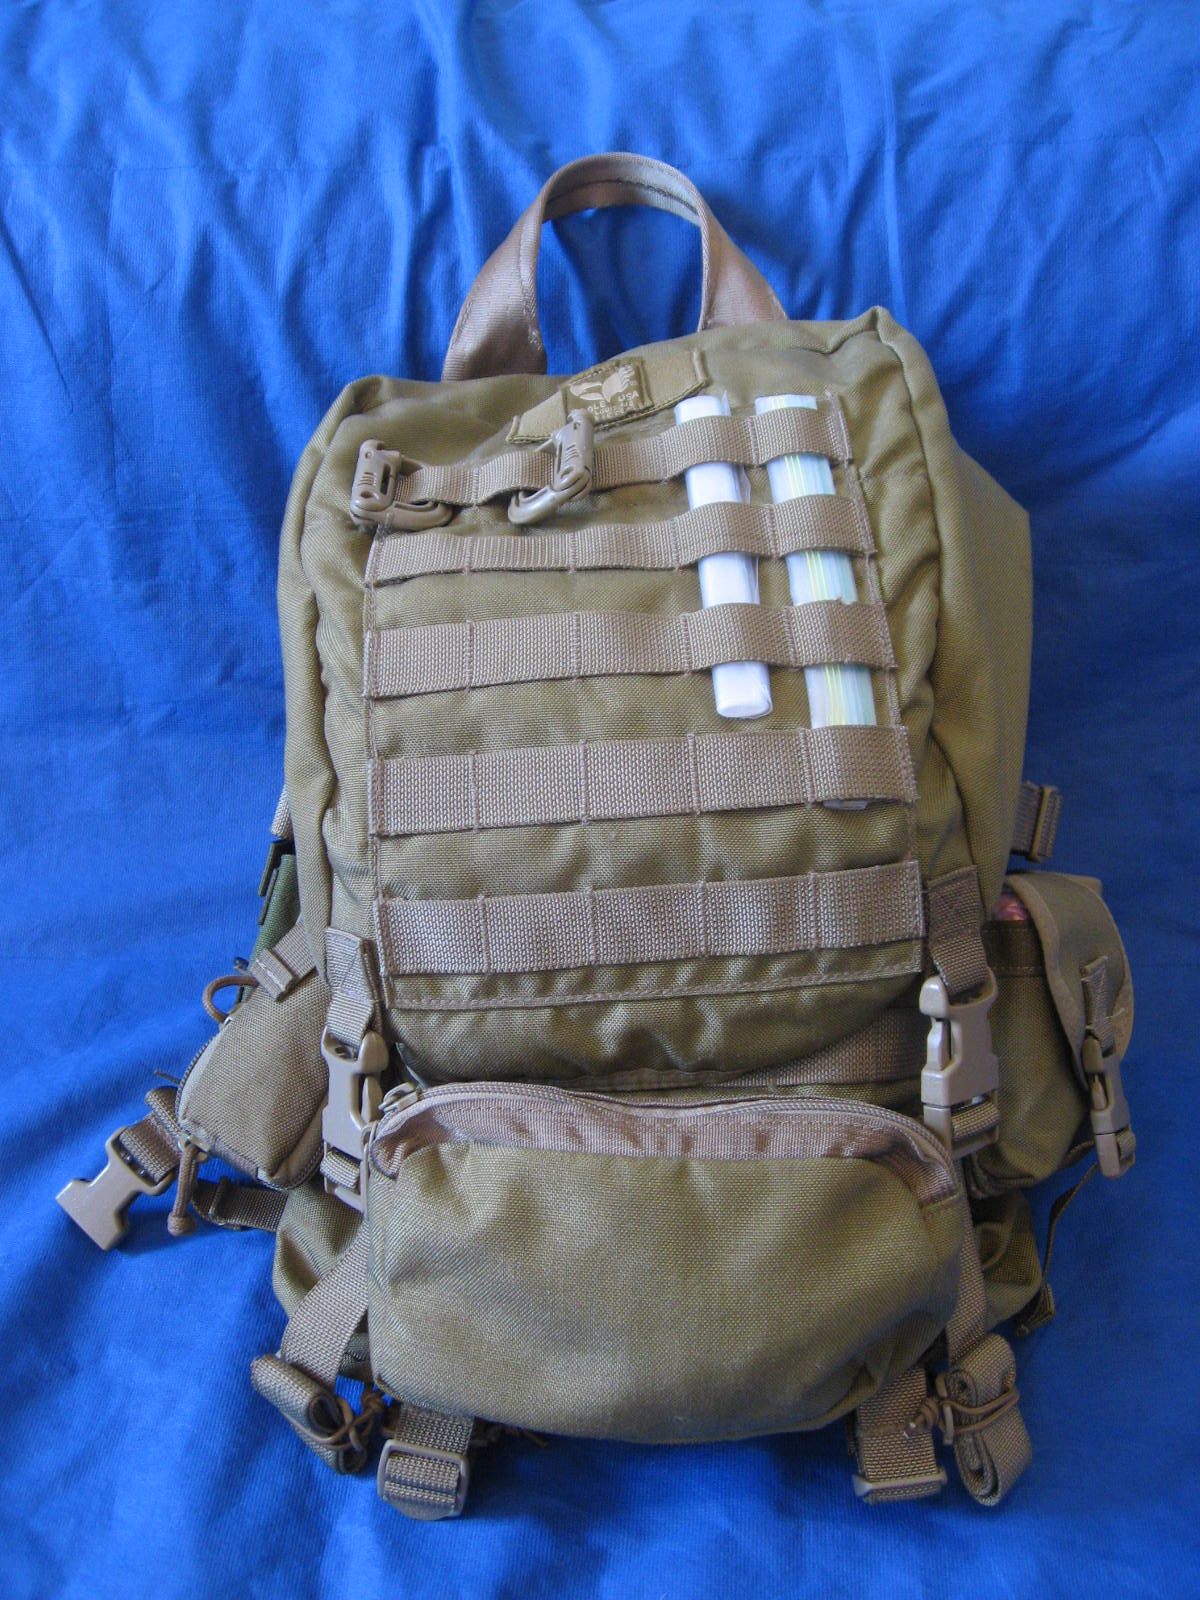 One Guy's Gear: Everyday MOLLE: Tactical Diaper Bag